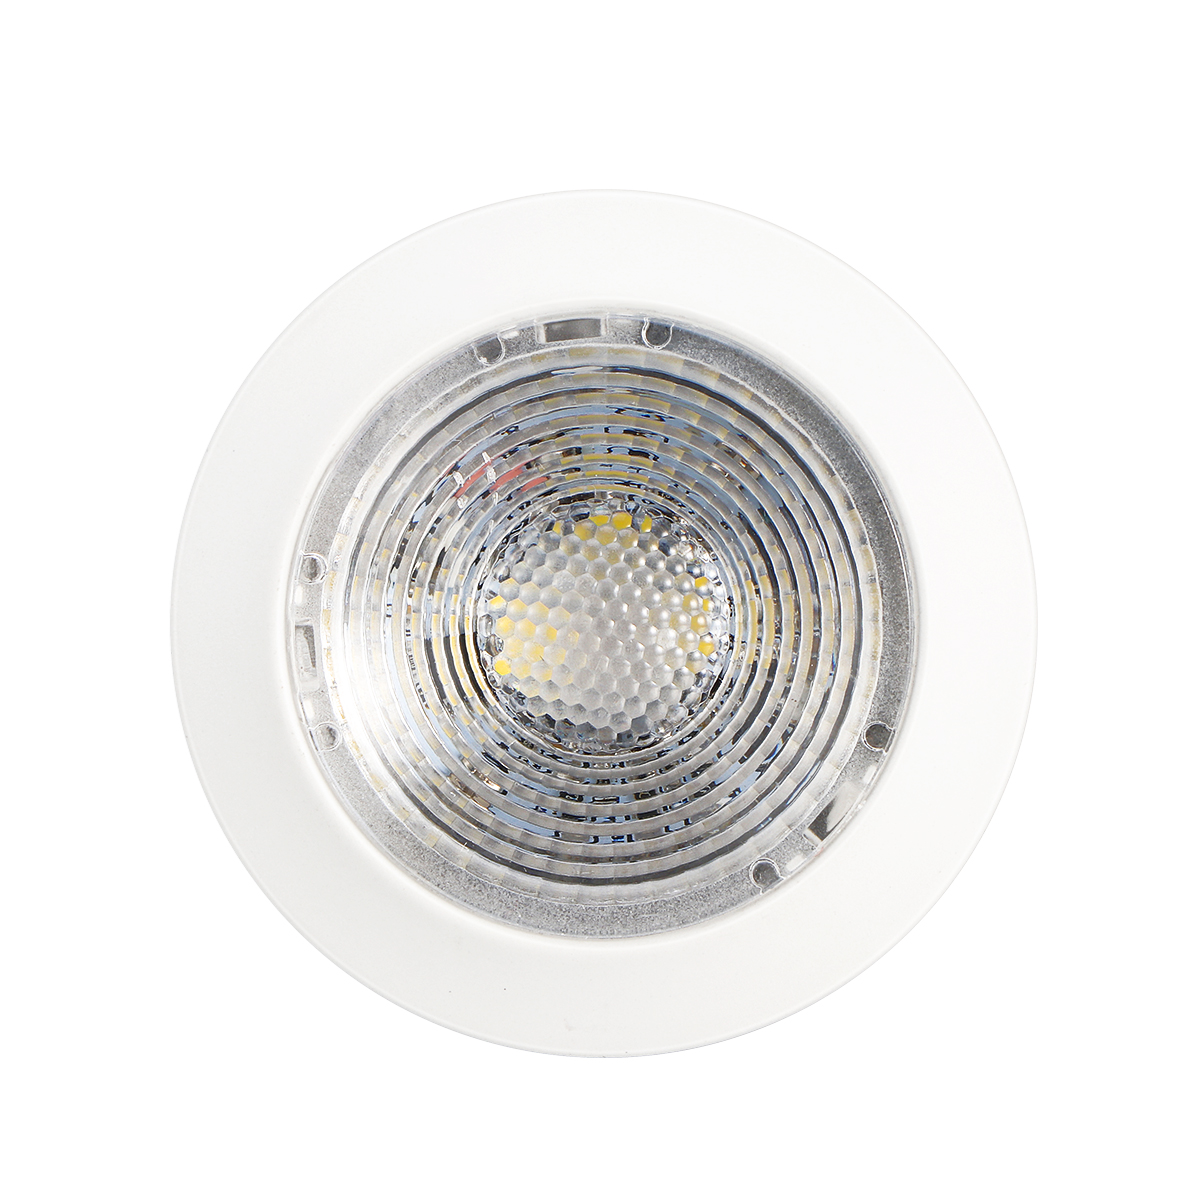 Led Underwater Lights Inventive Led Light 10w Rgb Underwater Waterproof Outdoor For Swimming Pool Pond Fountain Clh@8